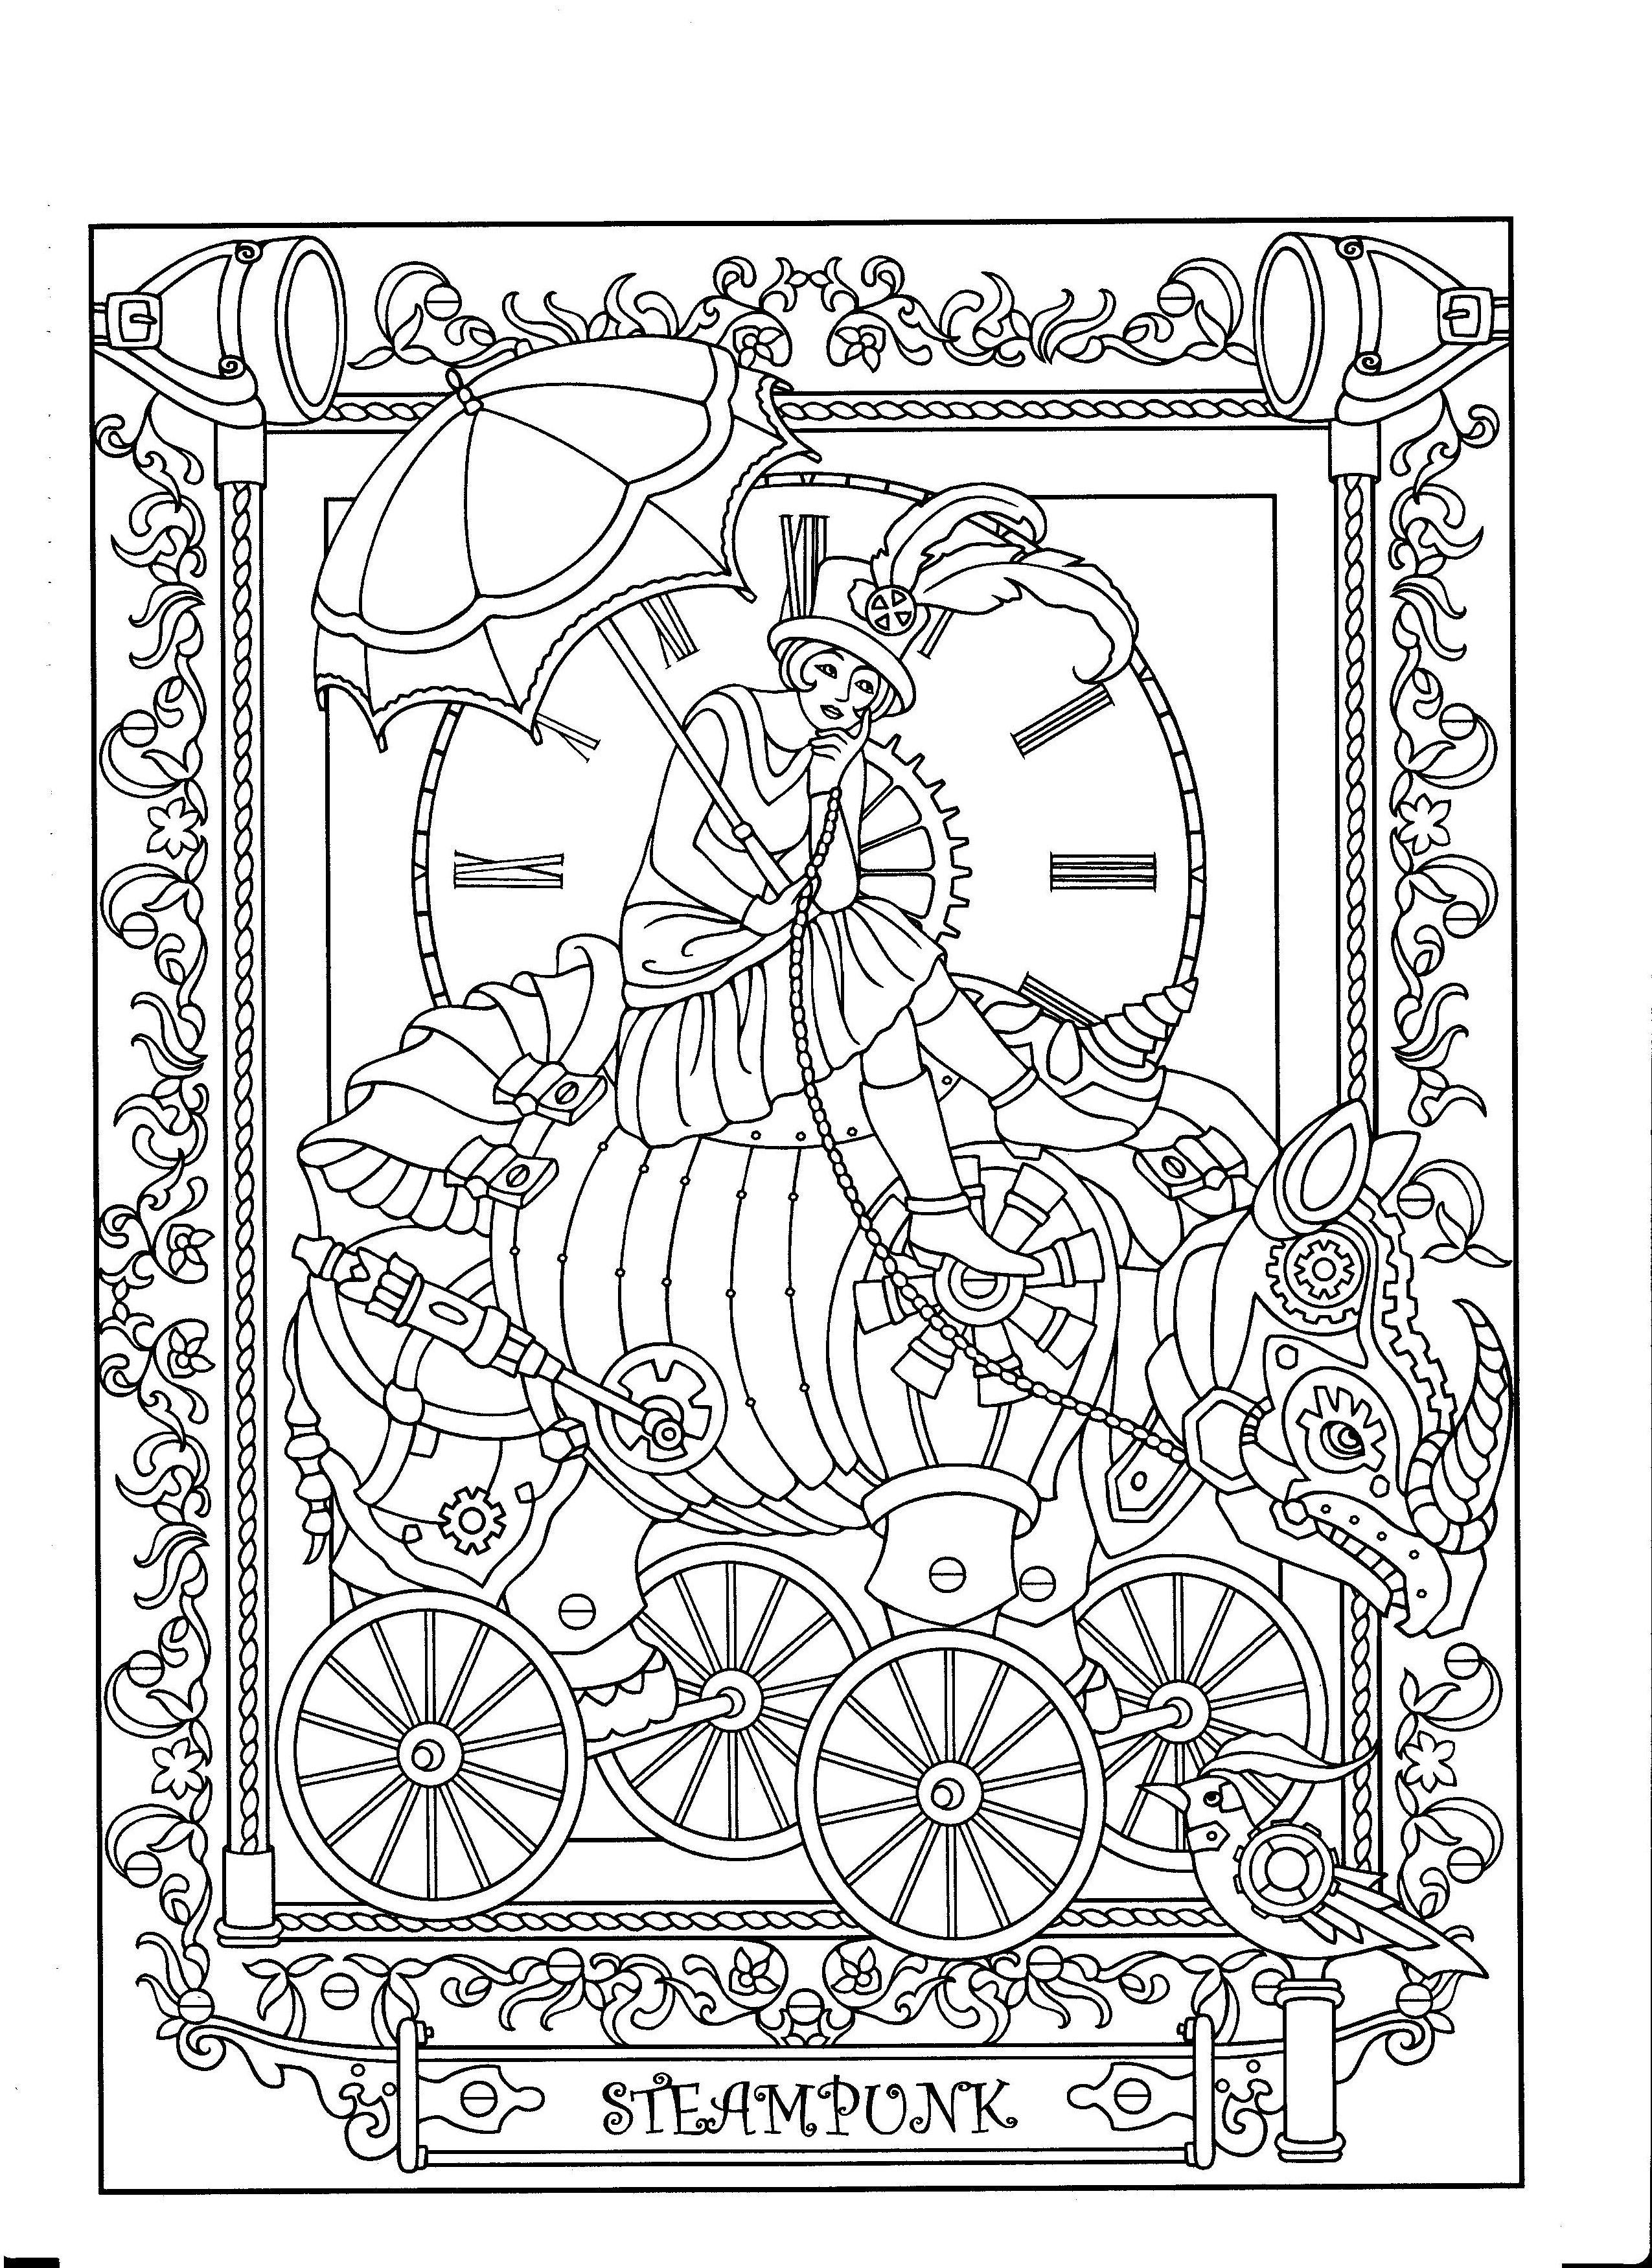 Steampunk Coloring Page Steampunk Coloring Book Steampunk Coloring Fairy Coloring Pages